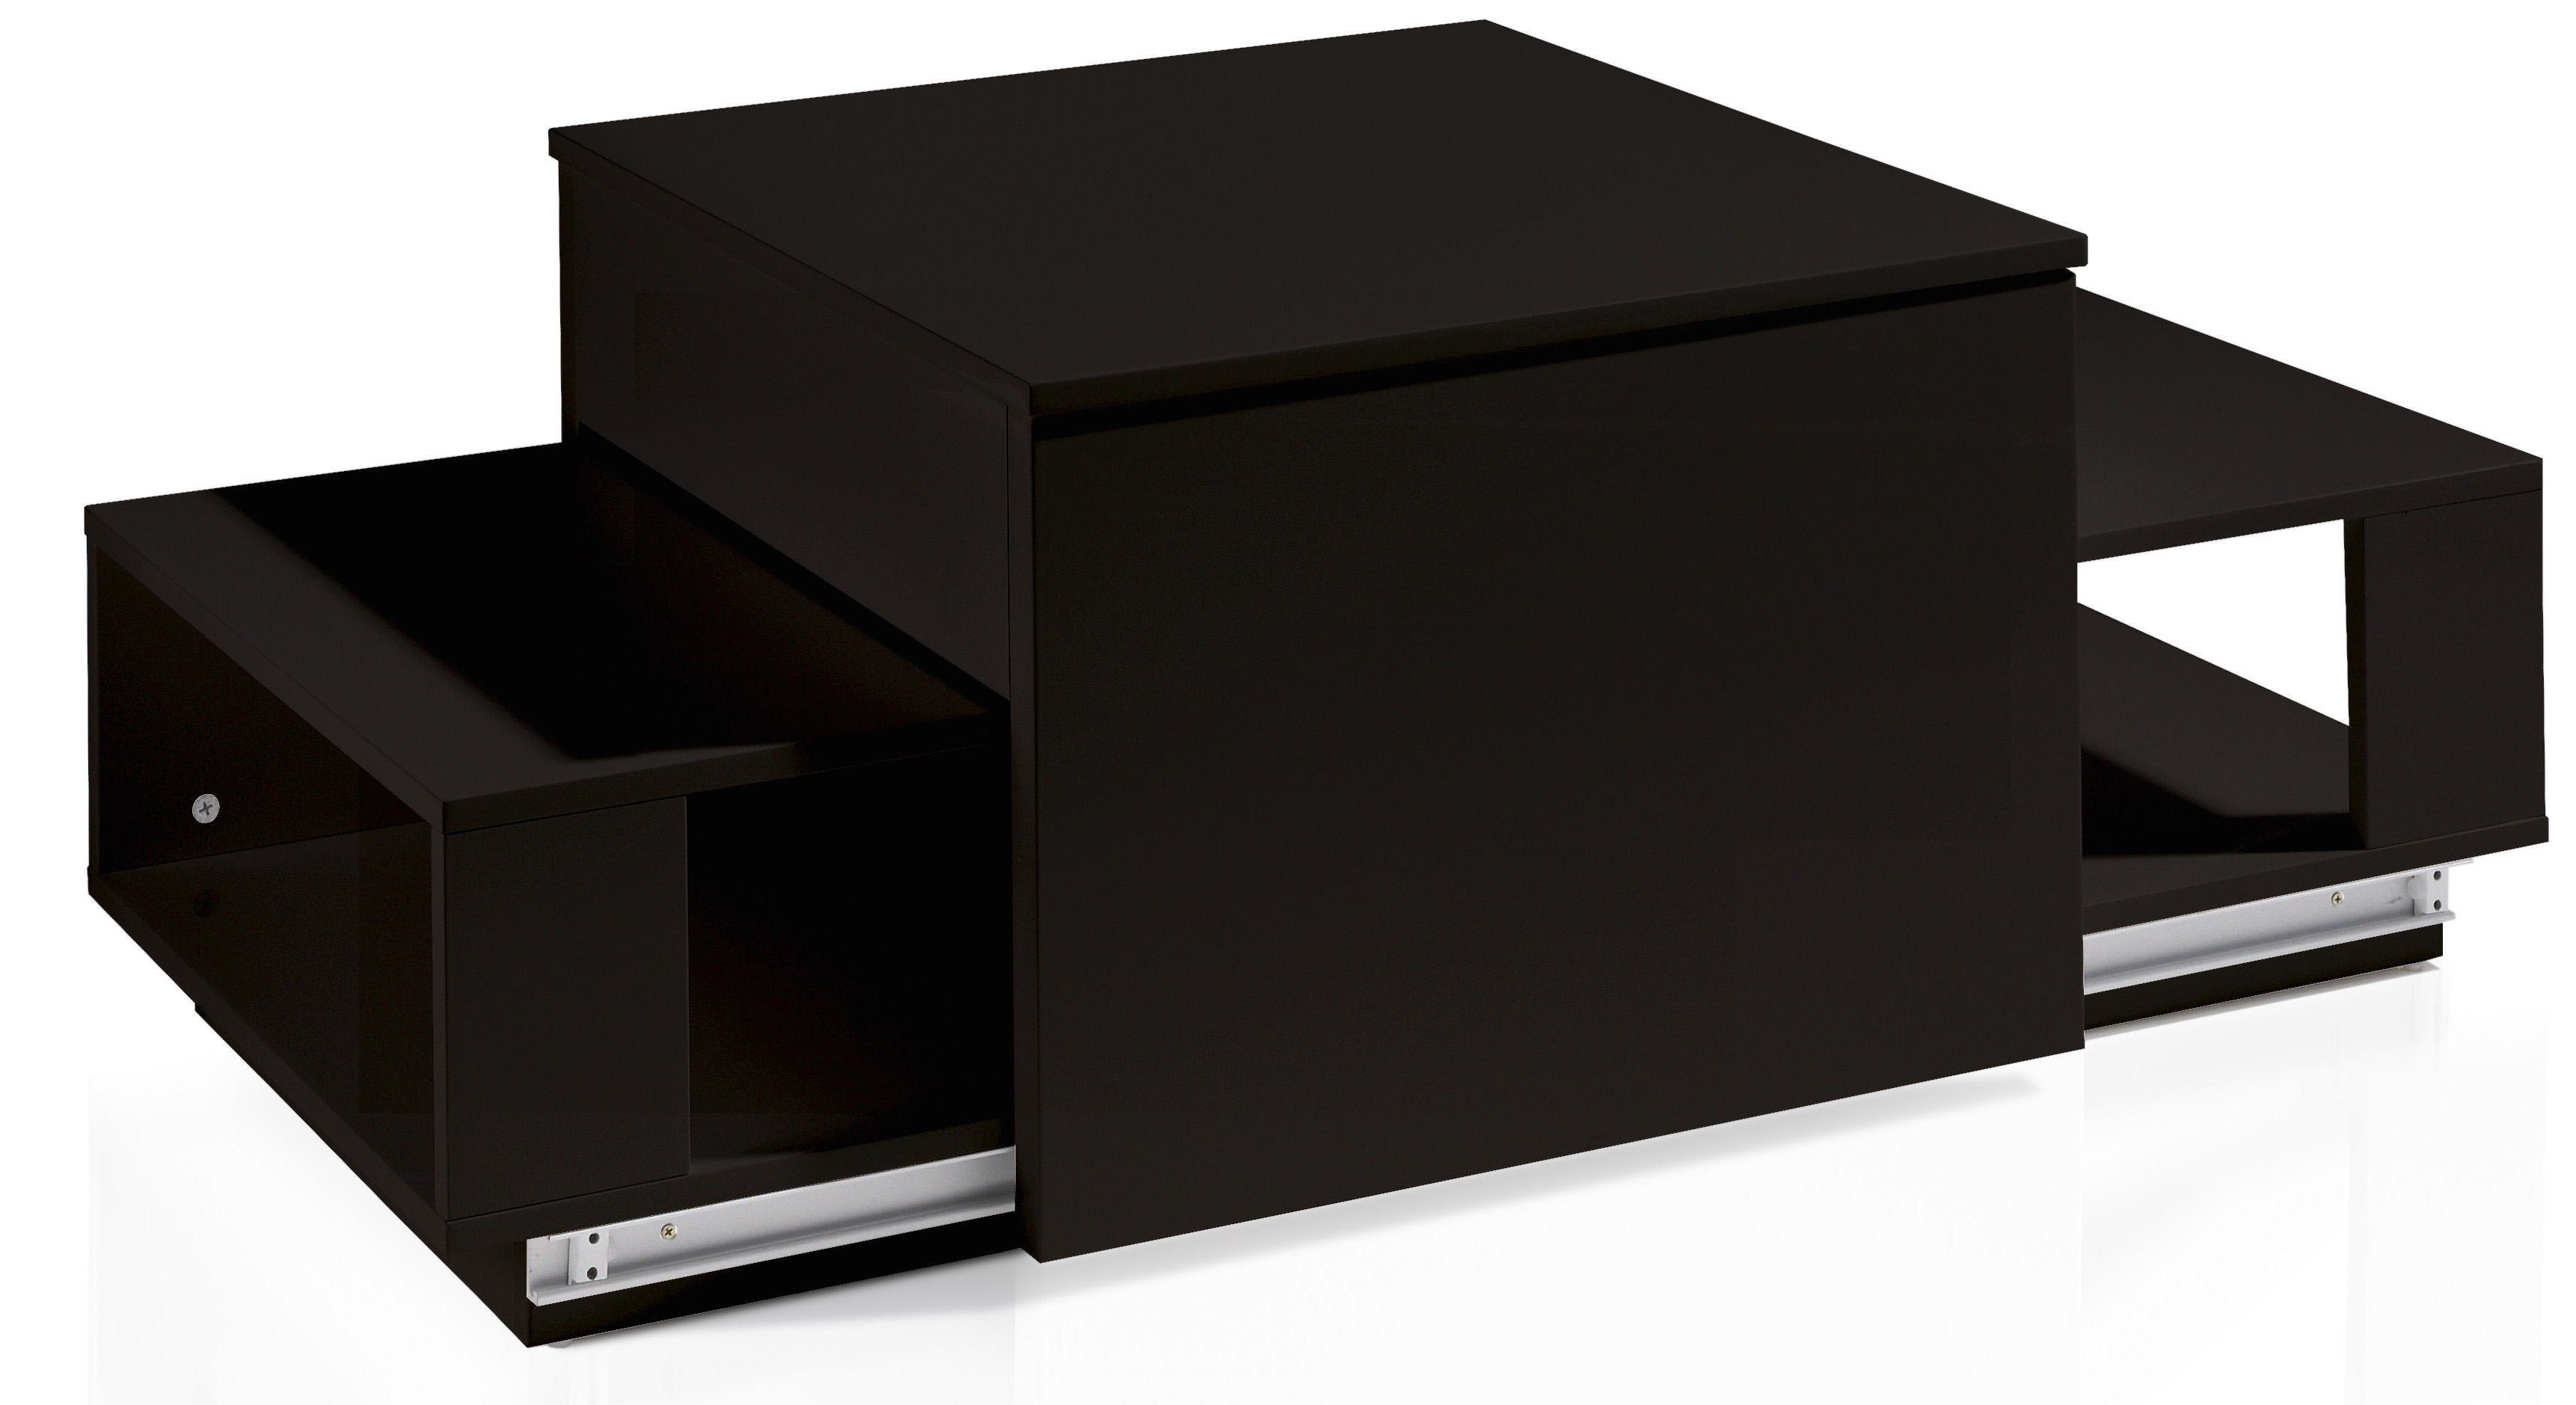 table basse relevable laquée noir optima | lestendances.fr